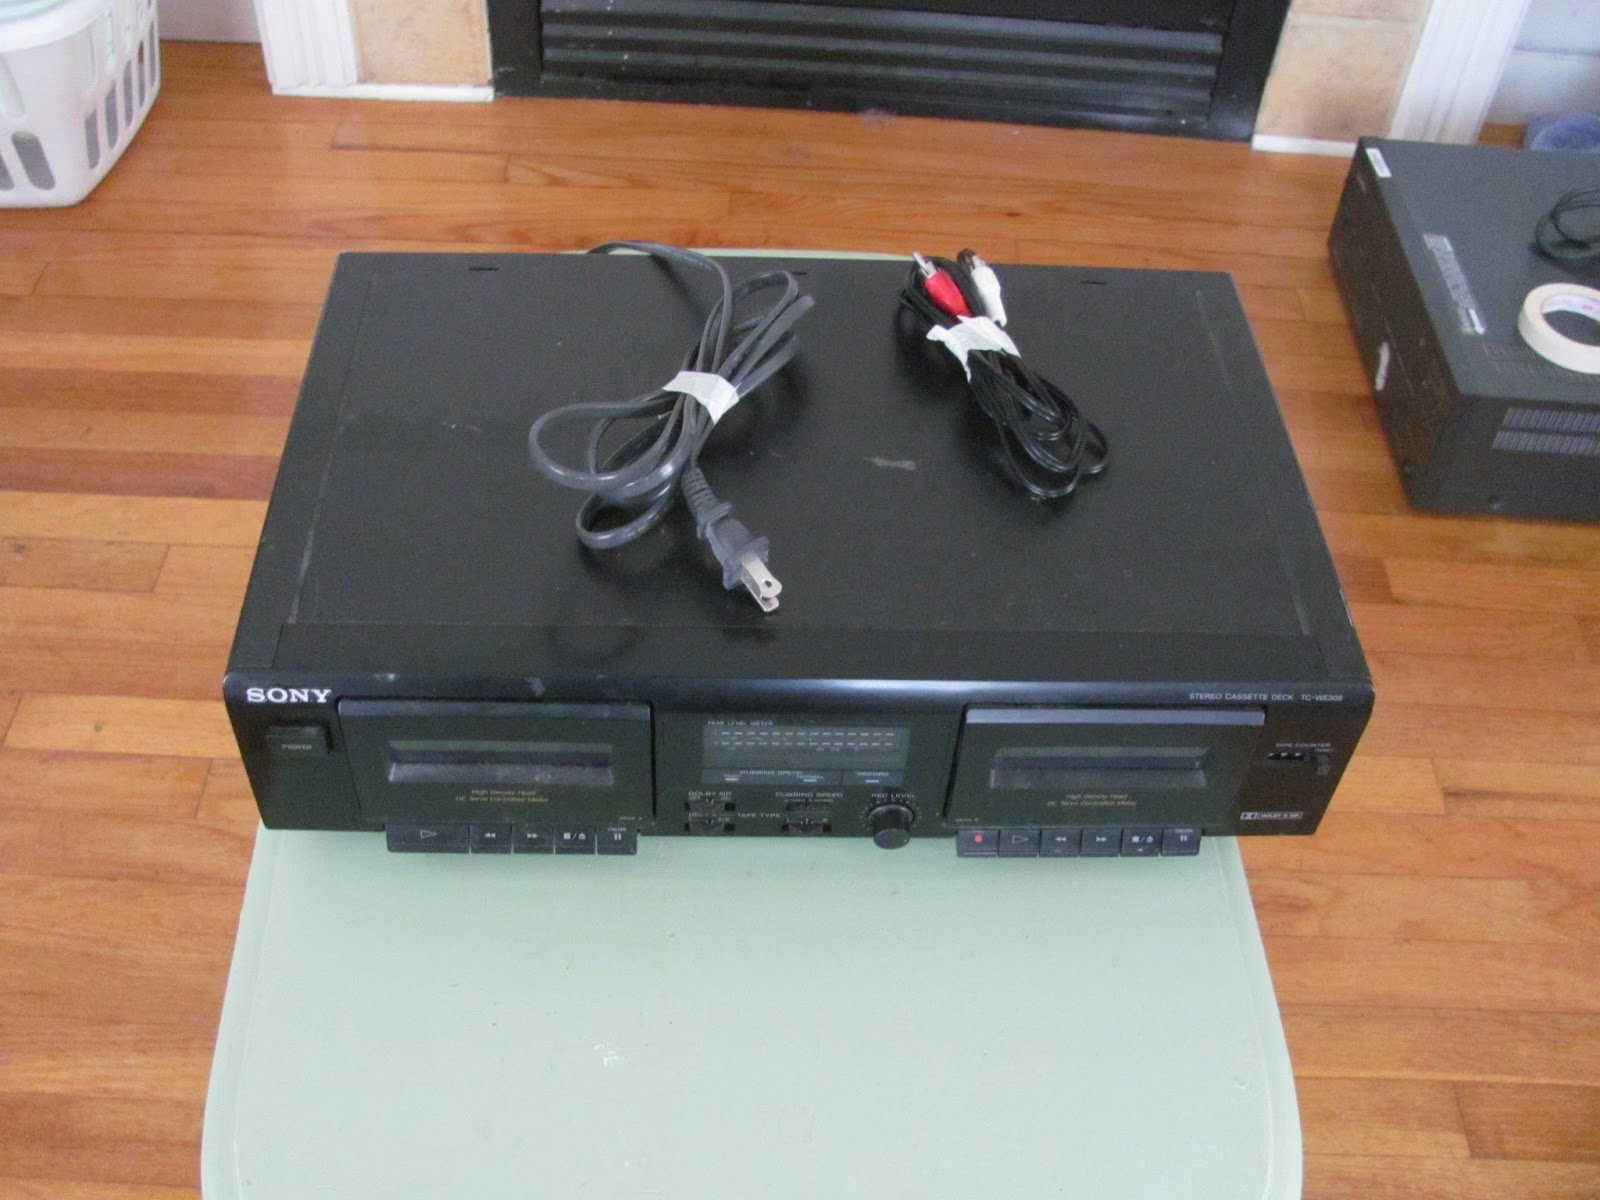 Top view of Sony dual cassette player